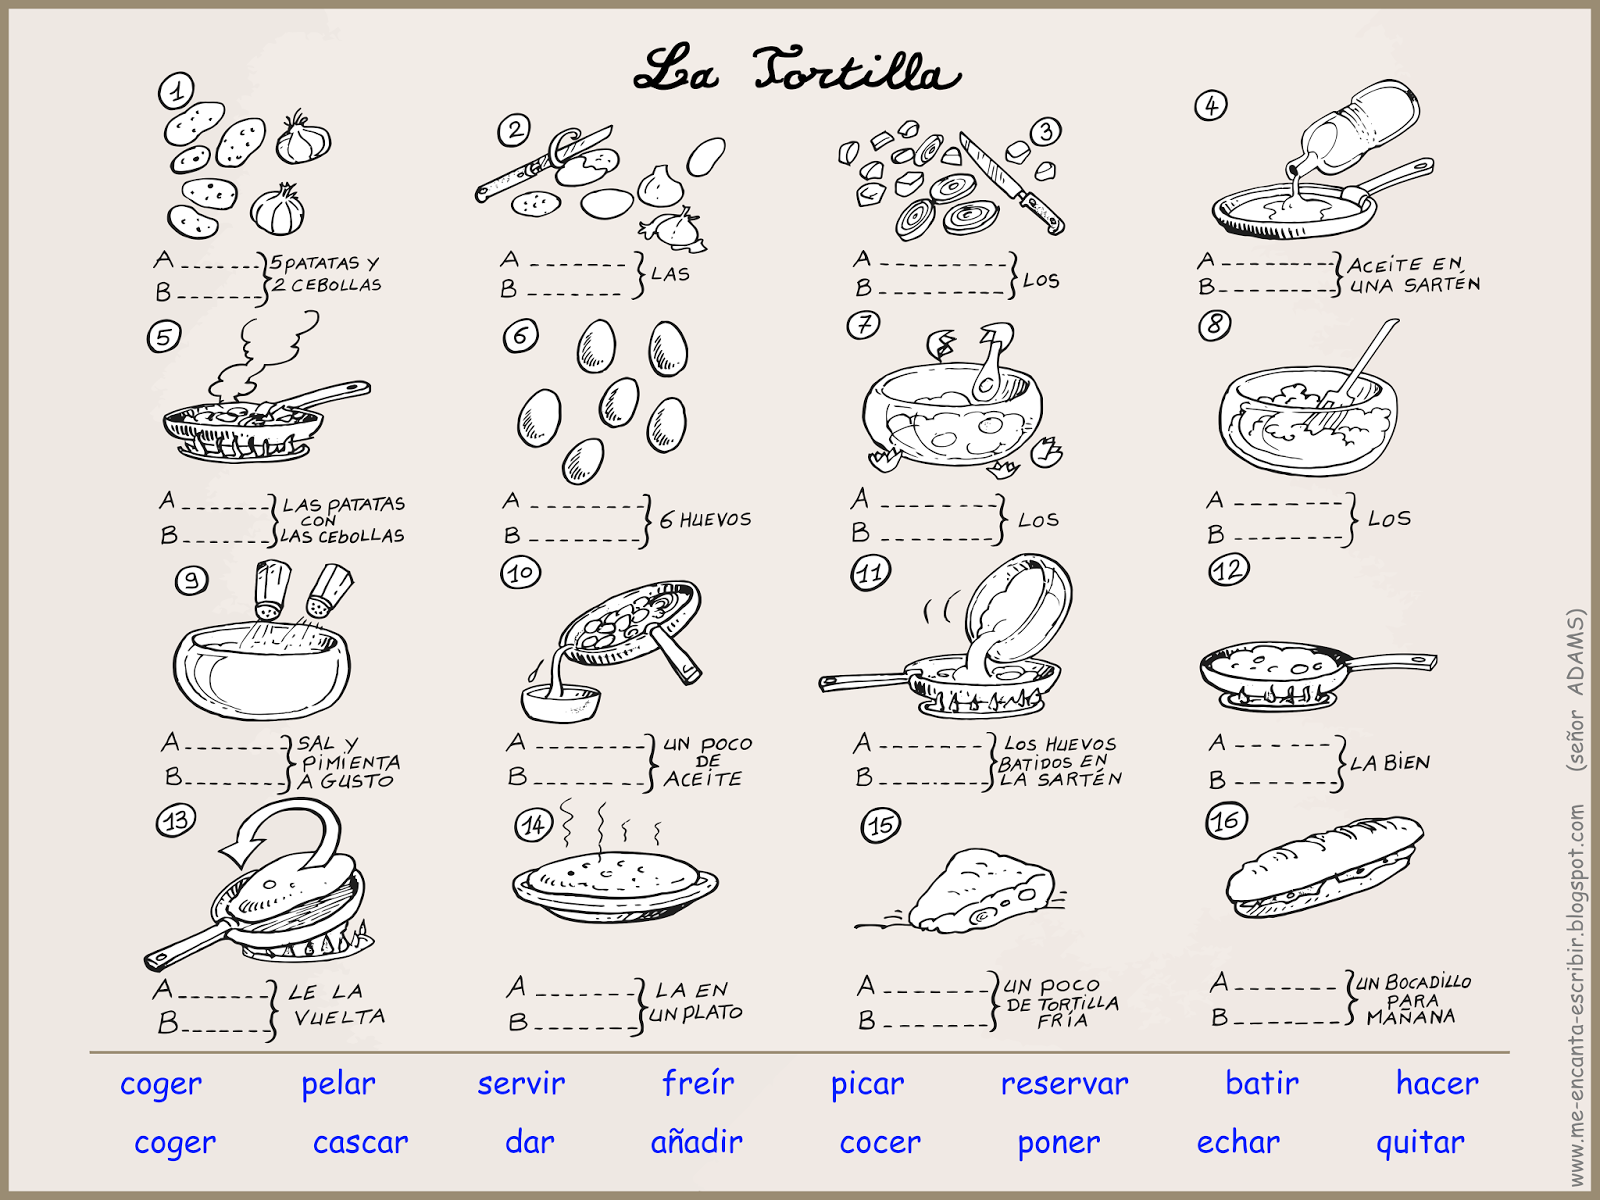 Como Hacer La Tortilla Espanola Writing Or Speaking Activity For La Comida